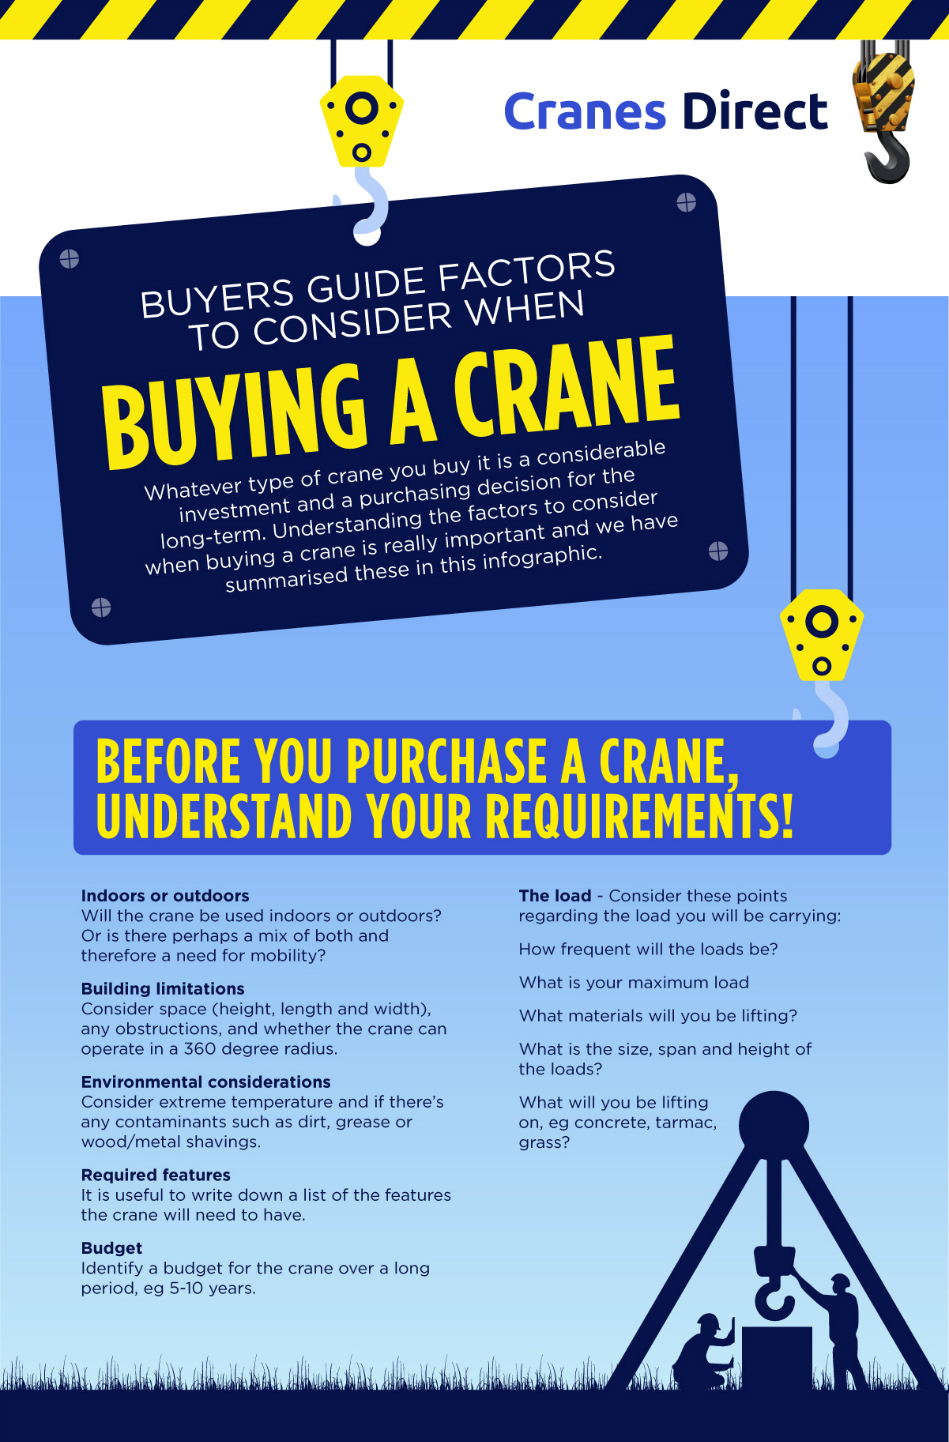 Cranes Direct reveal what to look out for when buying a crane with